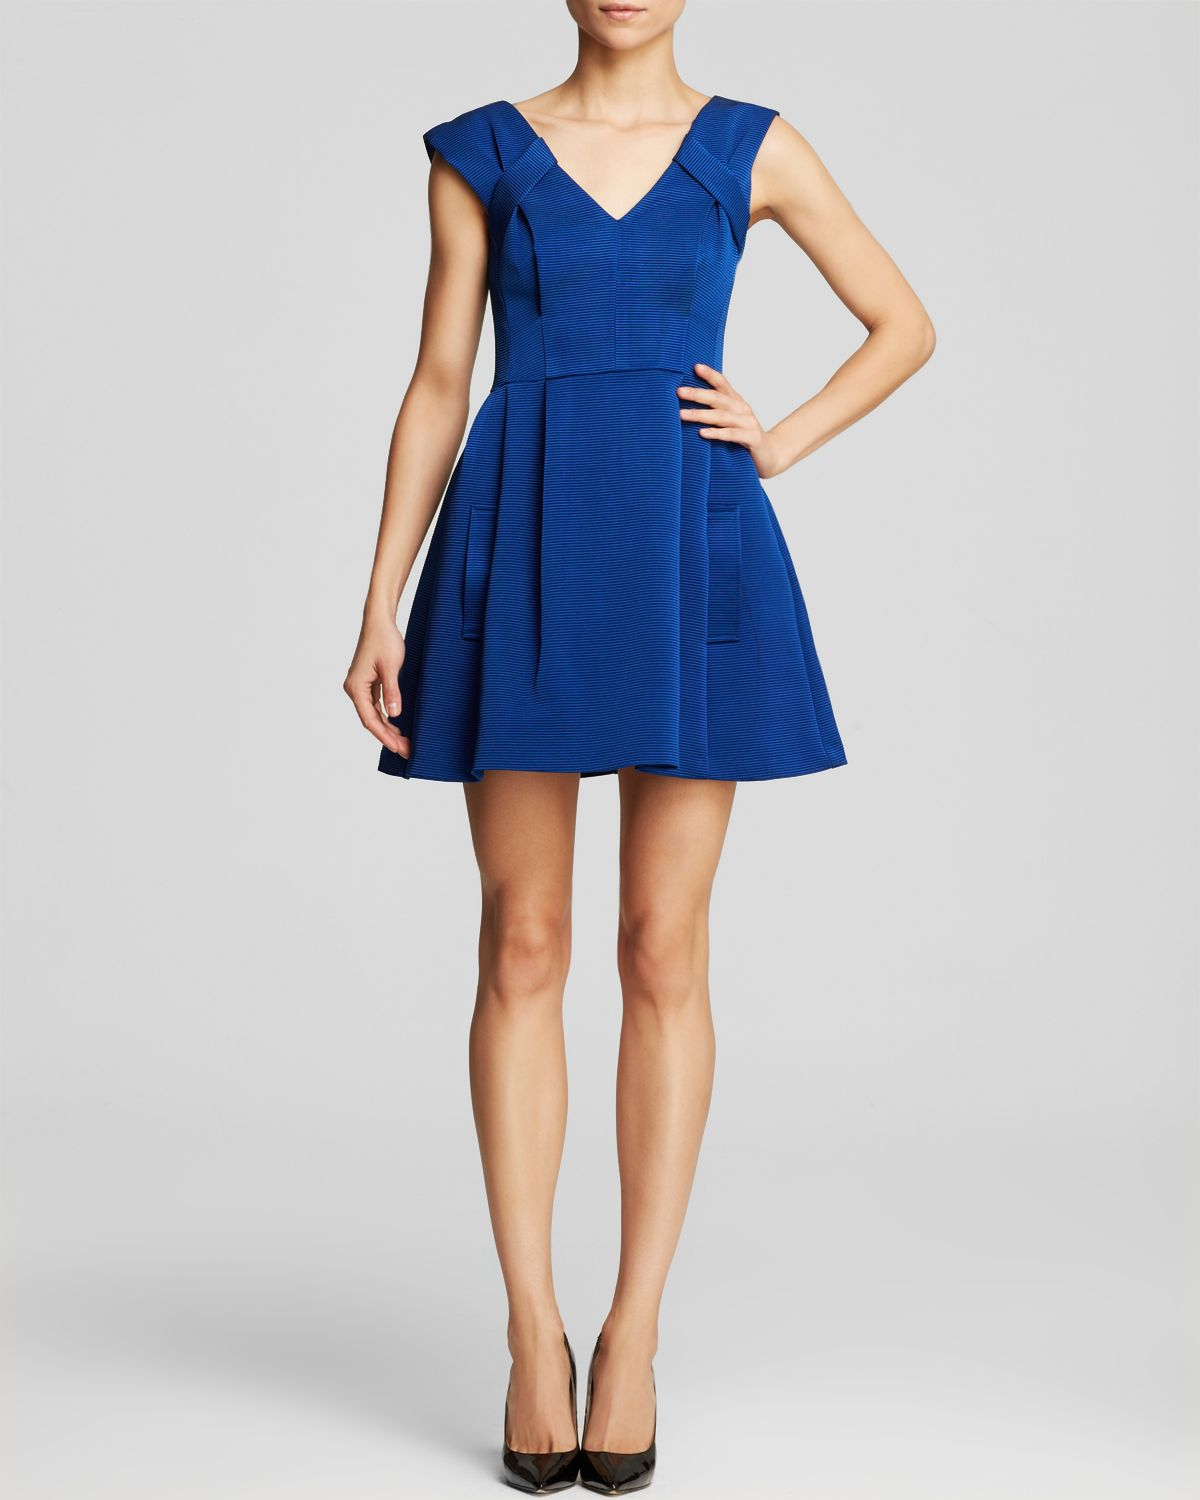 Lepore Blue Dress